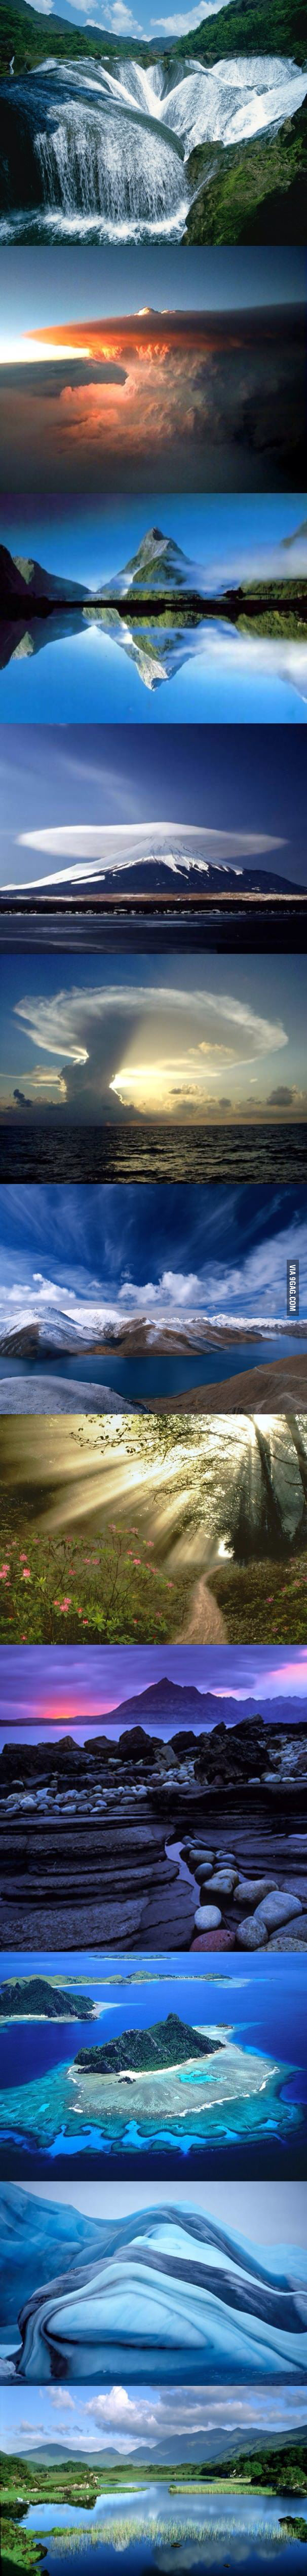 Some amazing images of nature